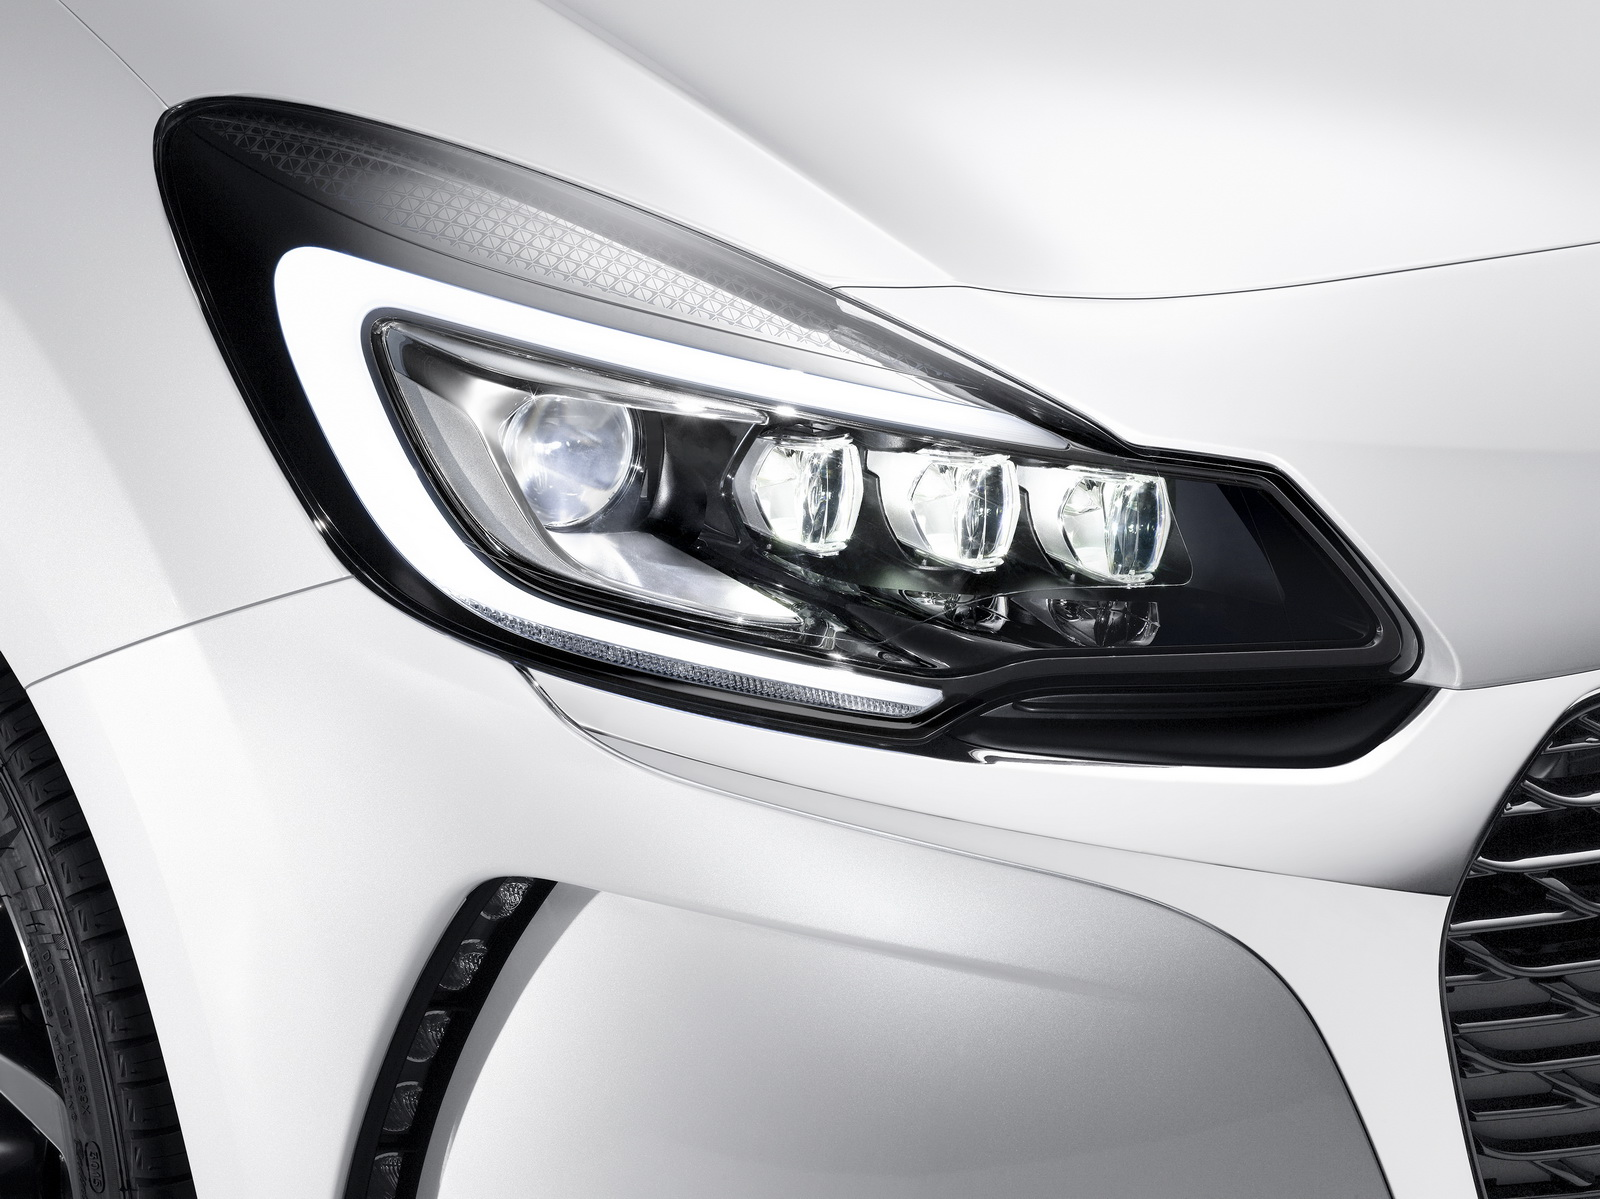 DS Automobiles - 2016 - Nouvelle DS 3 - optique avant / front light